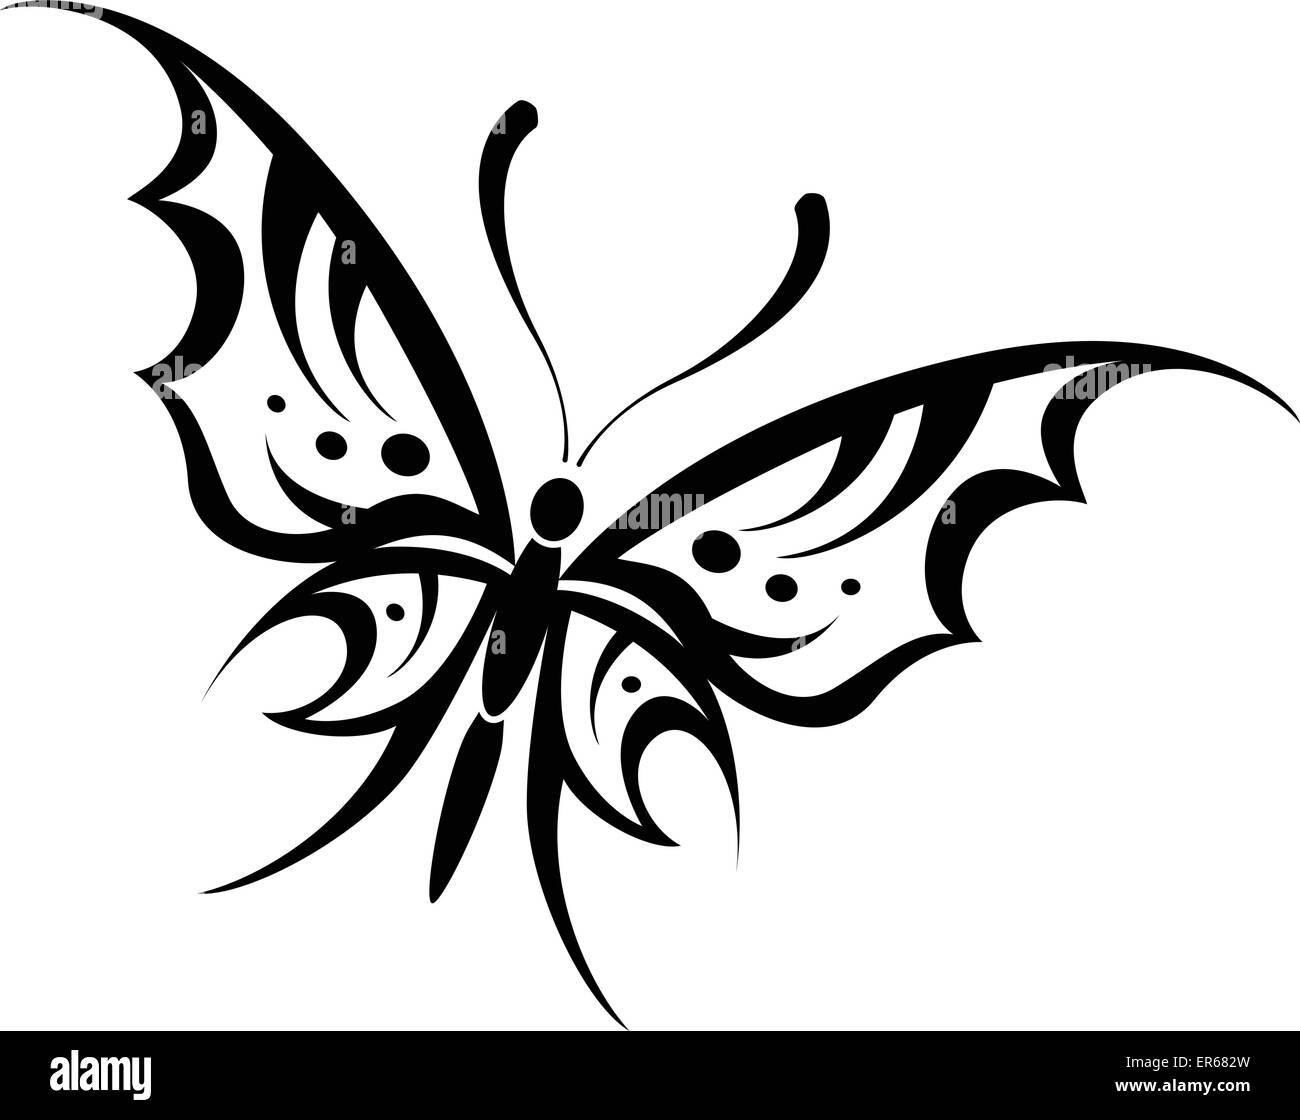 Vector Illustration De Dessin Tribal Papillon Sur Fond Blanc